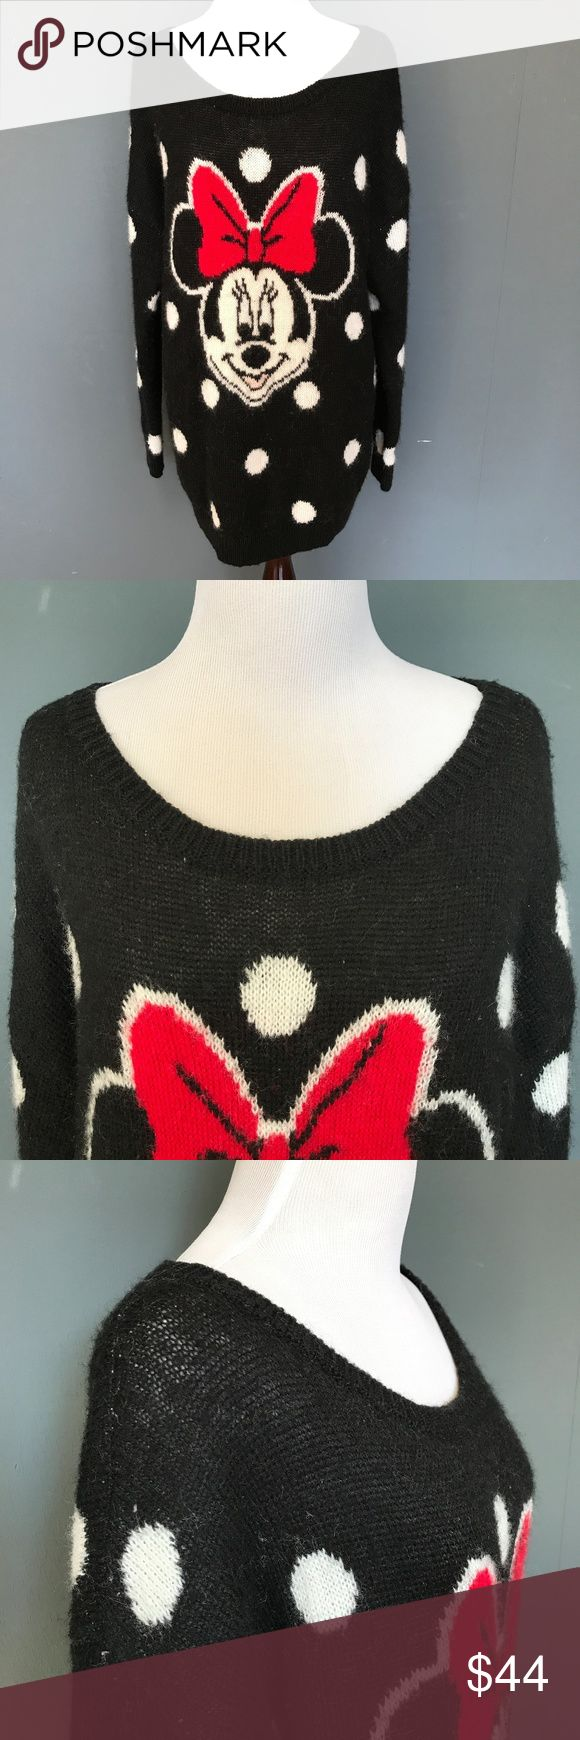 """H&M Minnie Sweater Wool Mohair Sweater - Small H&M Disney Minnie Sweater Small Black Oversized Sweater Mohair Wool Polka Dot S  Black medium weight oversized sweater with Minnie on the front and giant polka dots all over. Super soft and warm!   Excellent Condition!  Size: Small Bust (flat): 22"""" - 27"""" Length (from shoulder): 28""""  Sleeve (from shoulder) 20.5""""   72% Acrylic 12% Wool 9% Mohair.  Check out my Trixy Xchange Store for more sweaters and hoodies! :)  tags: womens girls halloween…"""